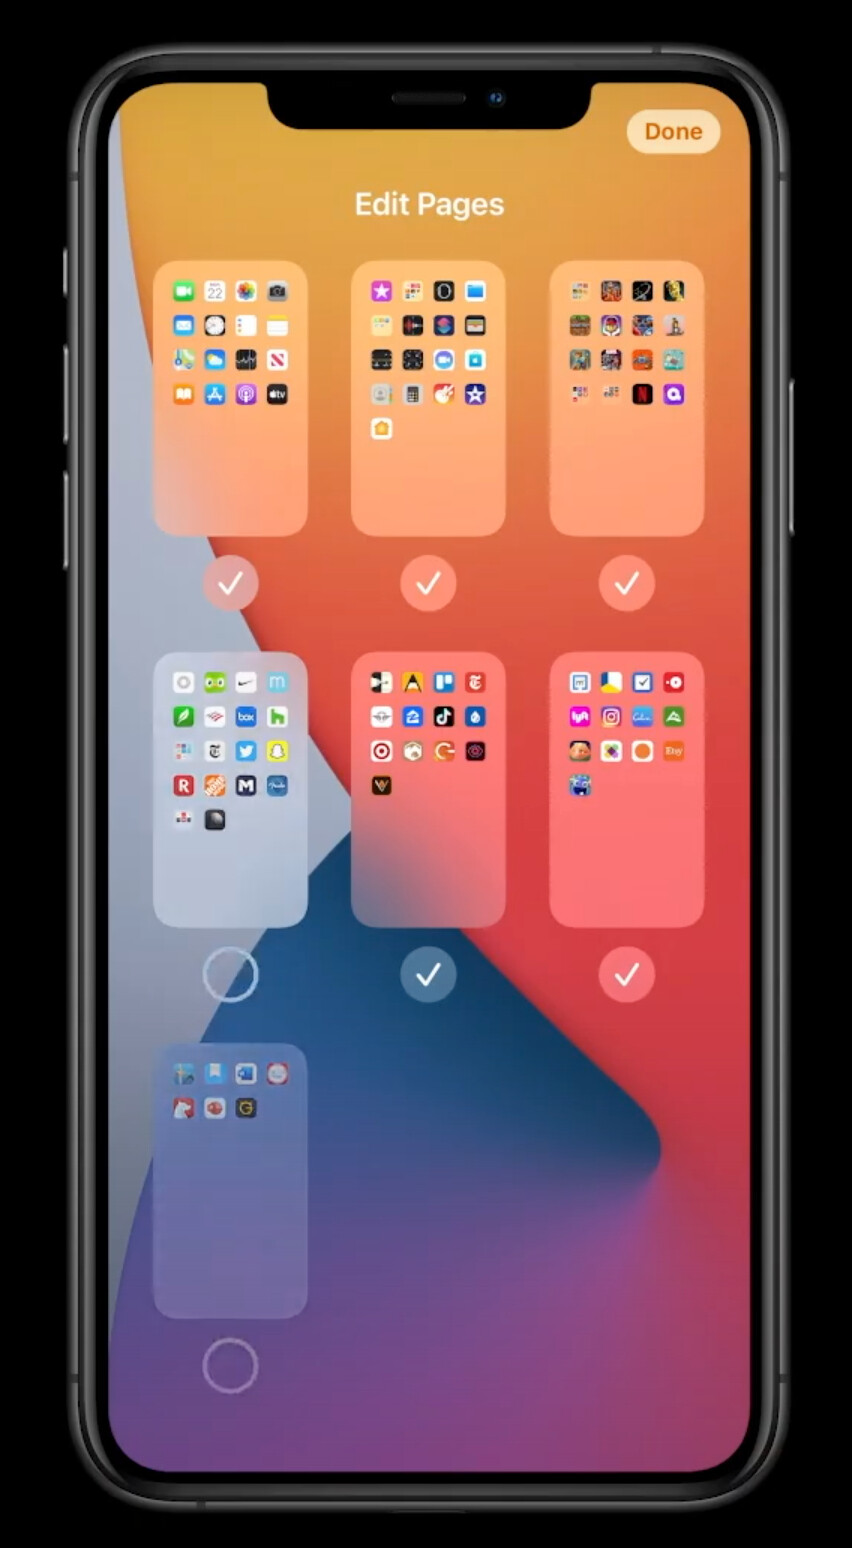 Hide homescreens to declutter your device - Apple just announced... an app drawer and widgets for iOS 14!